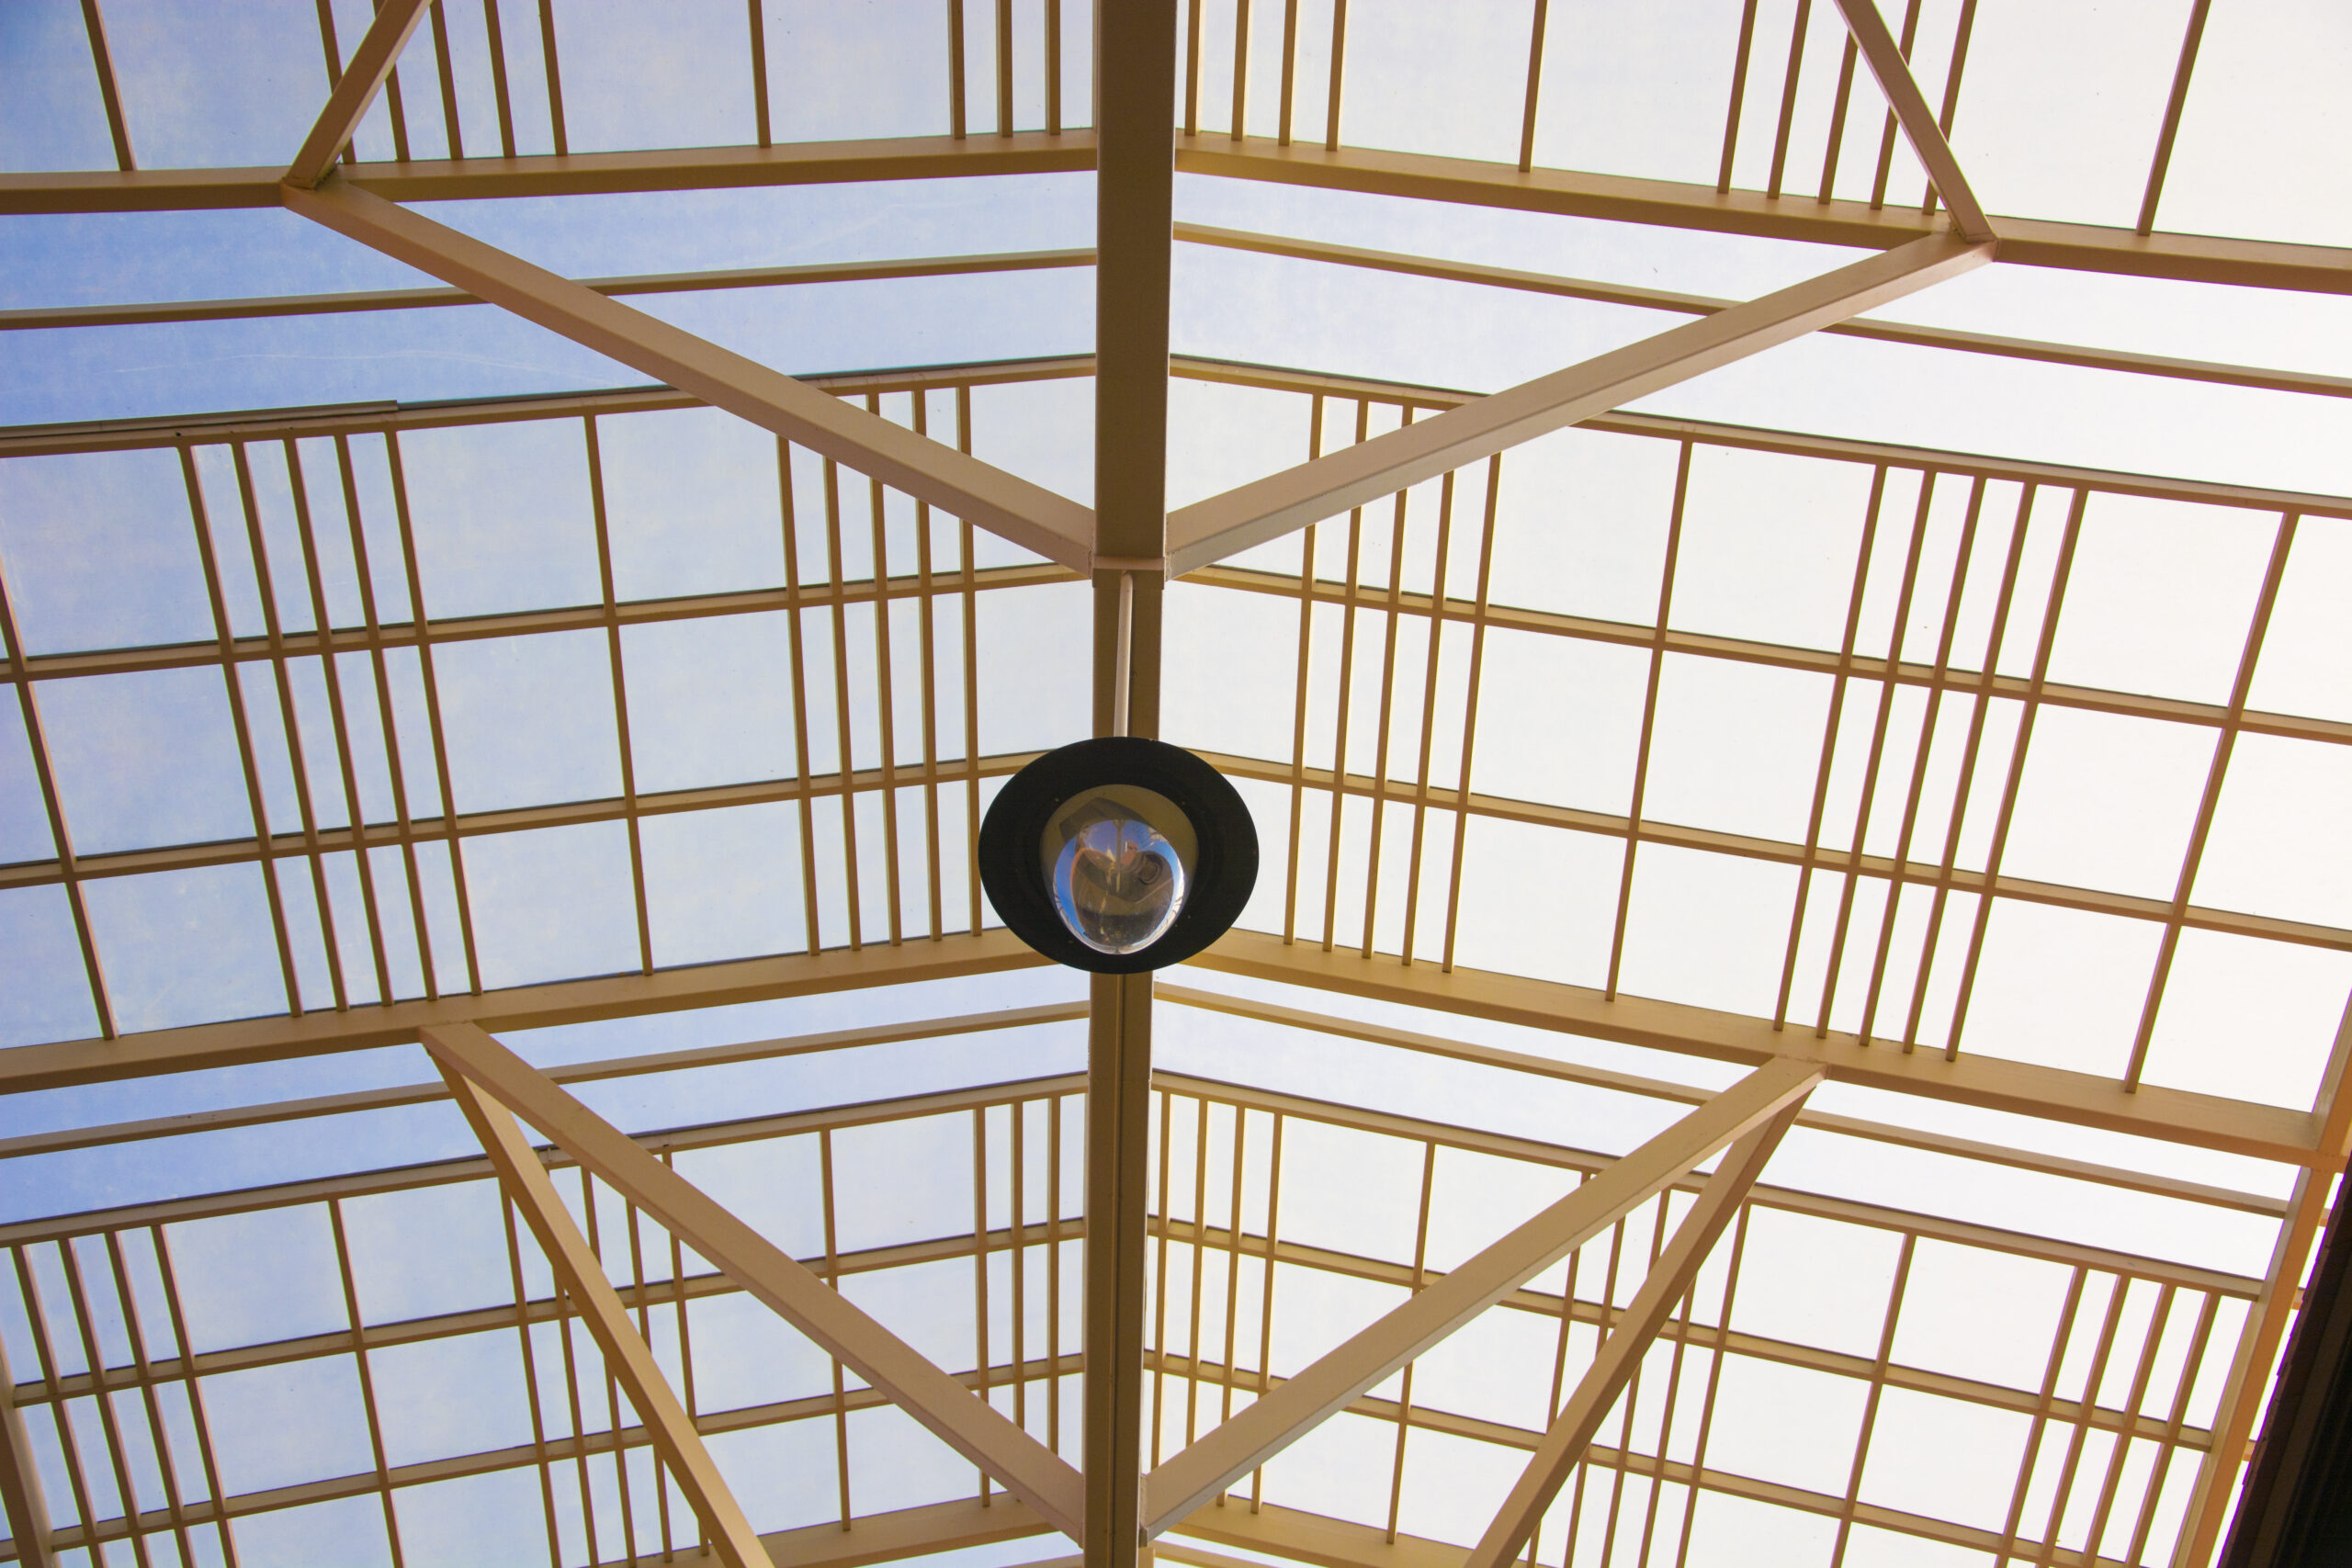 skylight roofing with materials like polycarbonate sheets